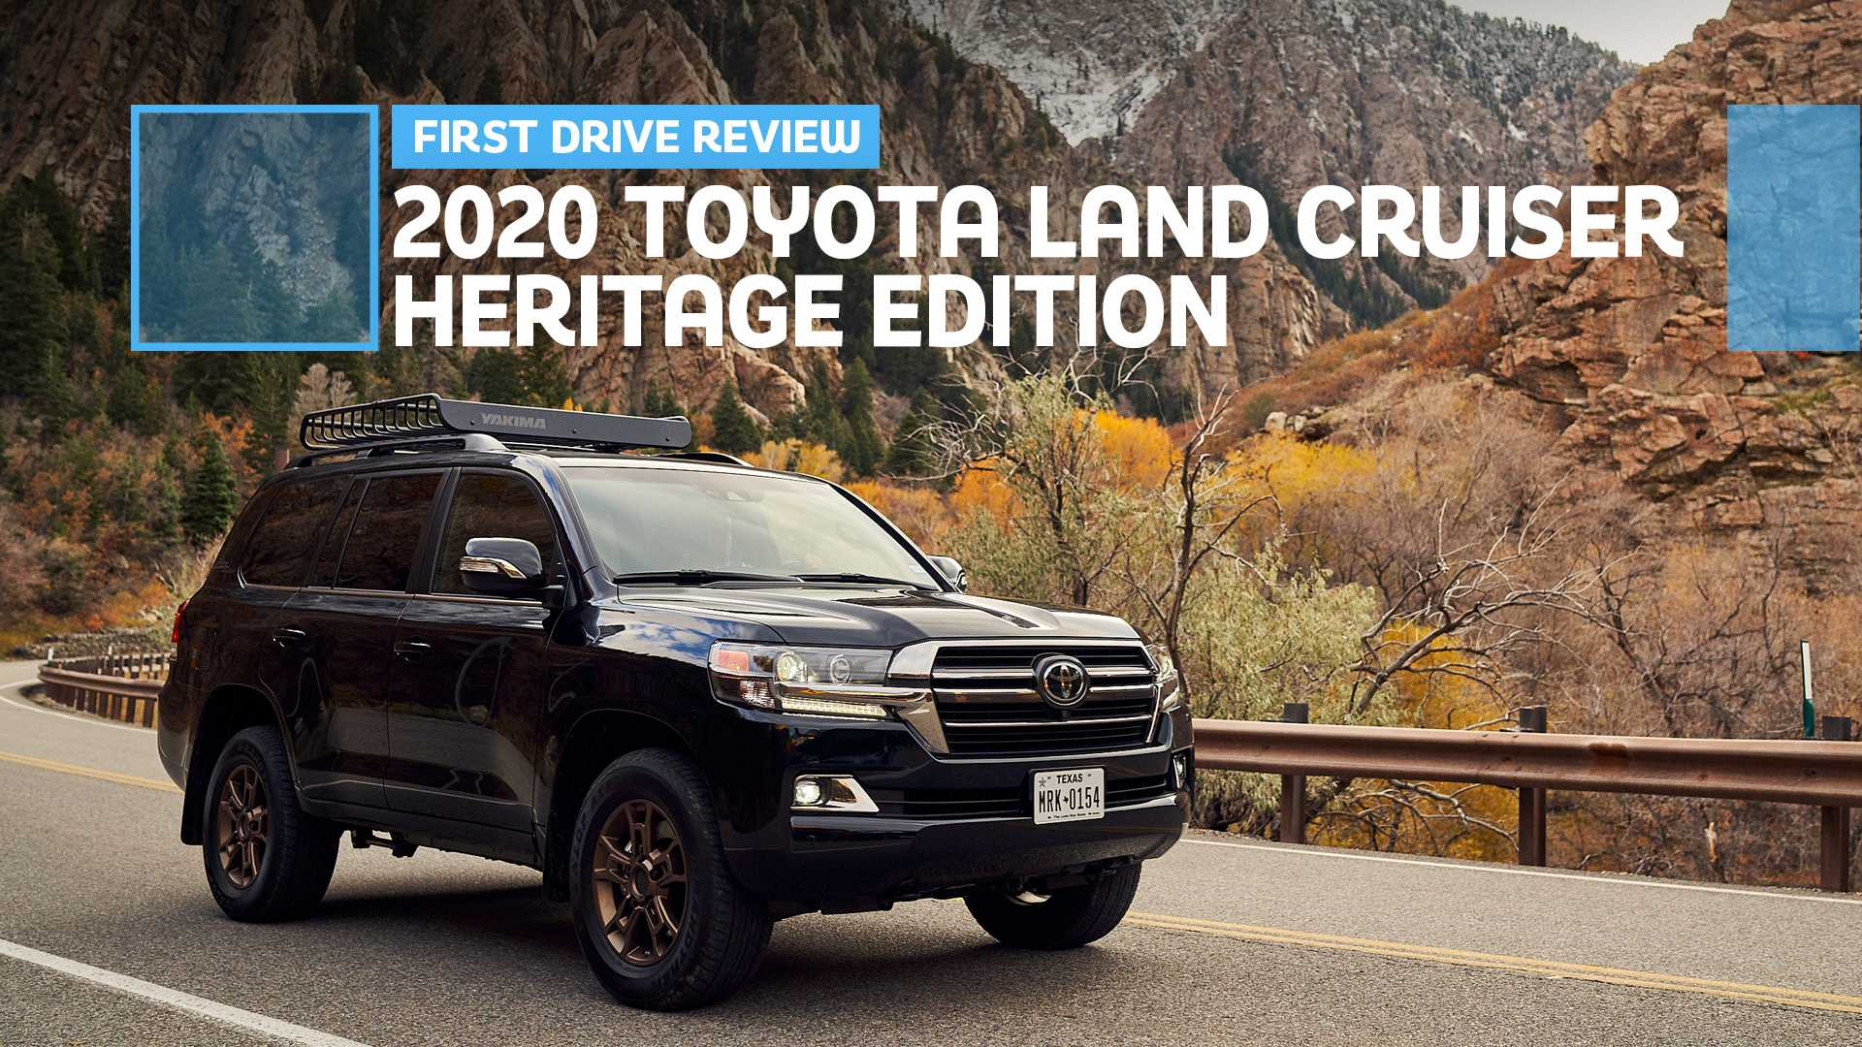 7 Toyota Land Cruiser Heritage Edition First Drive: Soldiering On